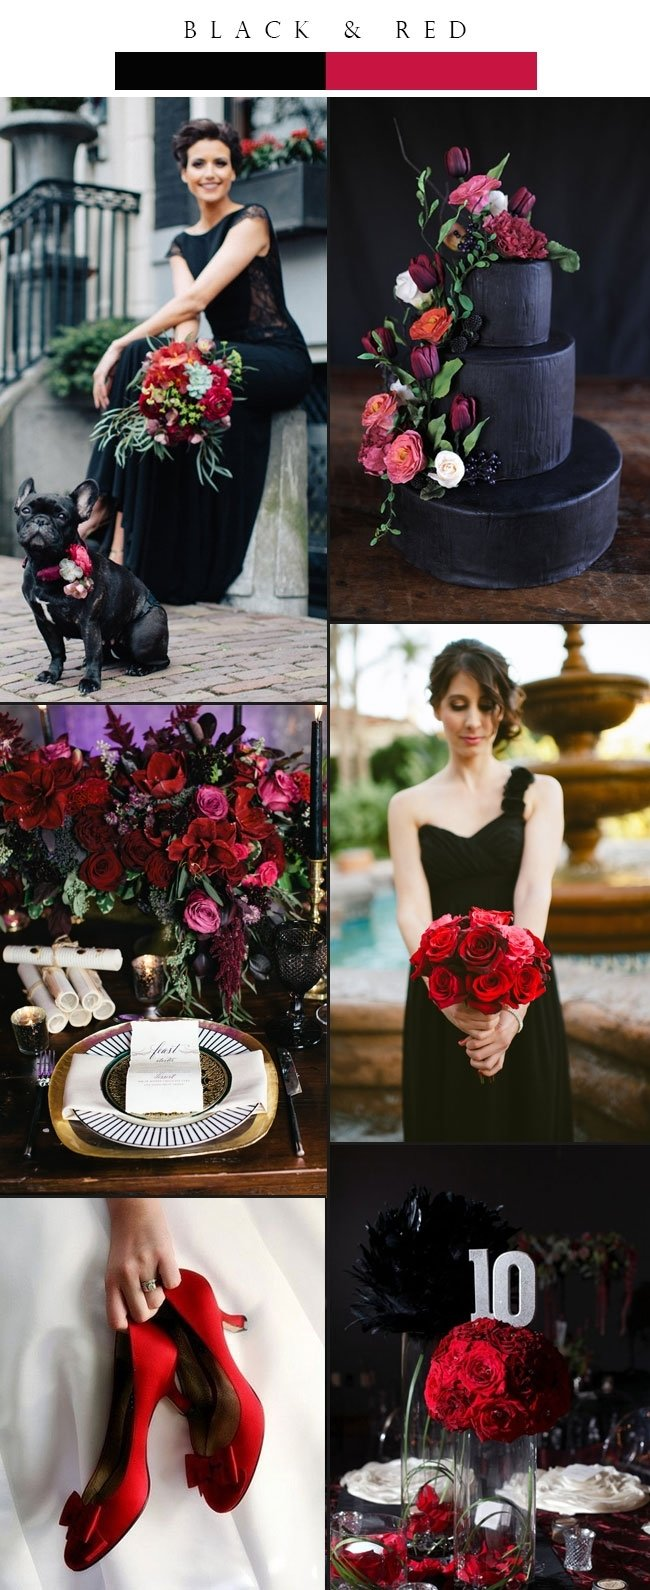 10 Stunning Black And Red Wedding Ideas top 3 glamorous black winter wedding color palette ideas stylish 2020